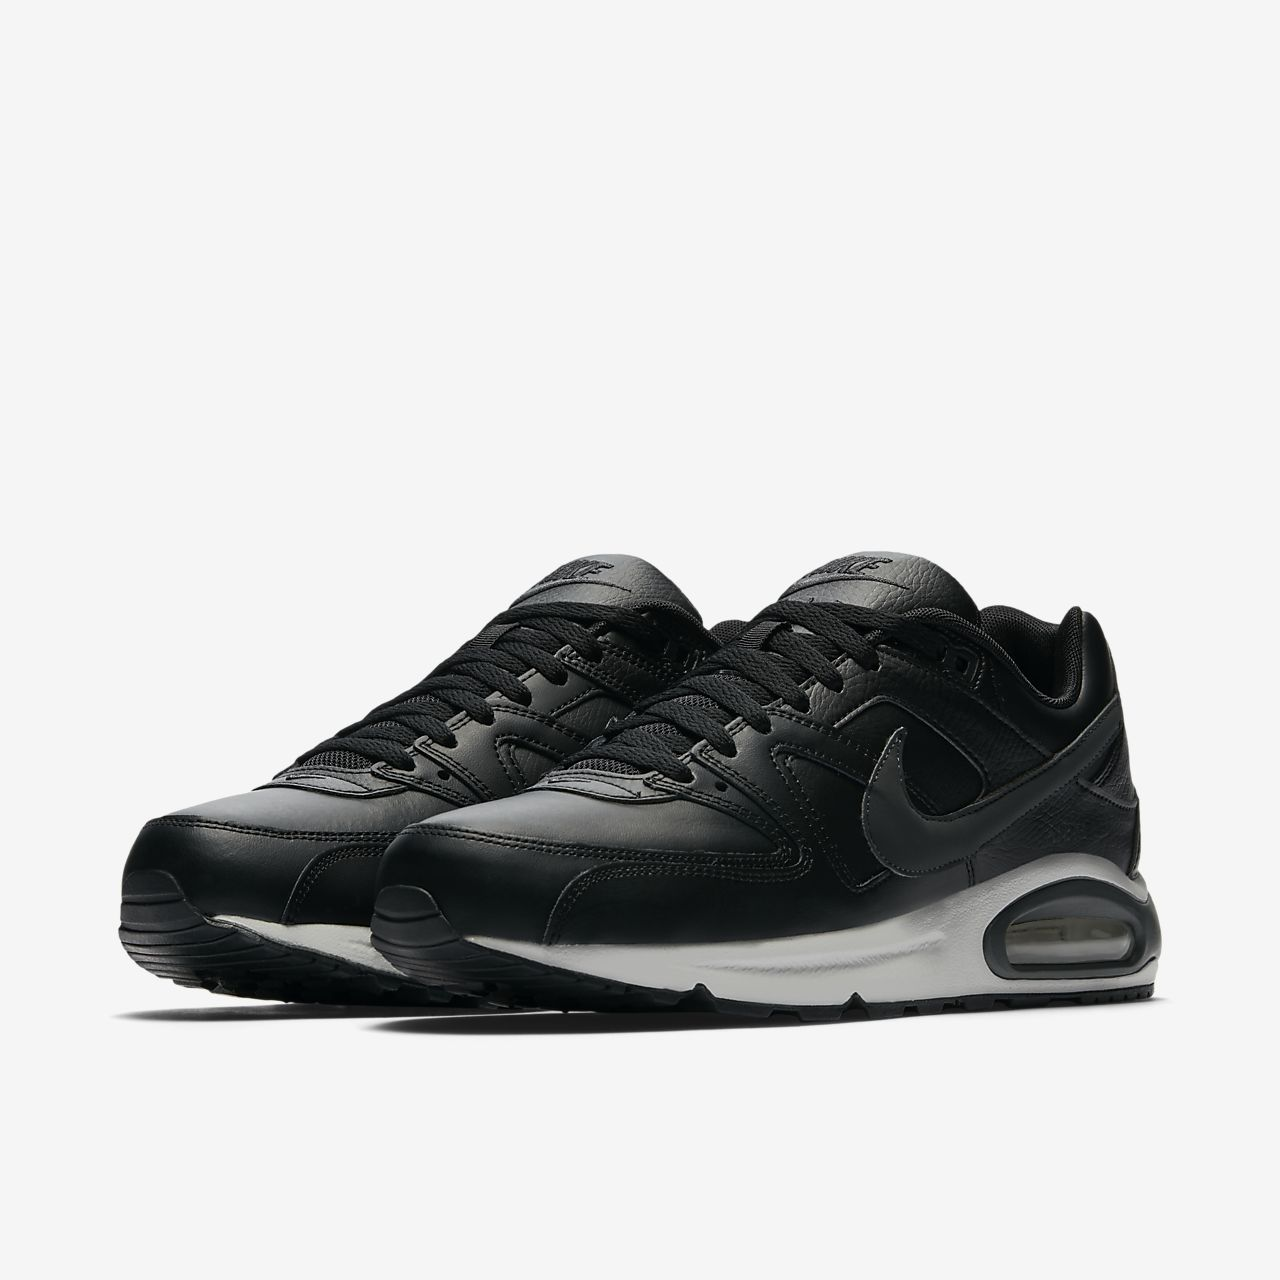 Nike Air Nike Leather Command Leather Command Max Nike Max Air Air FclJT1K3